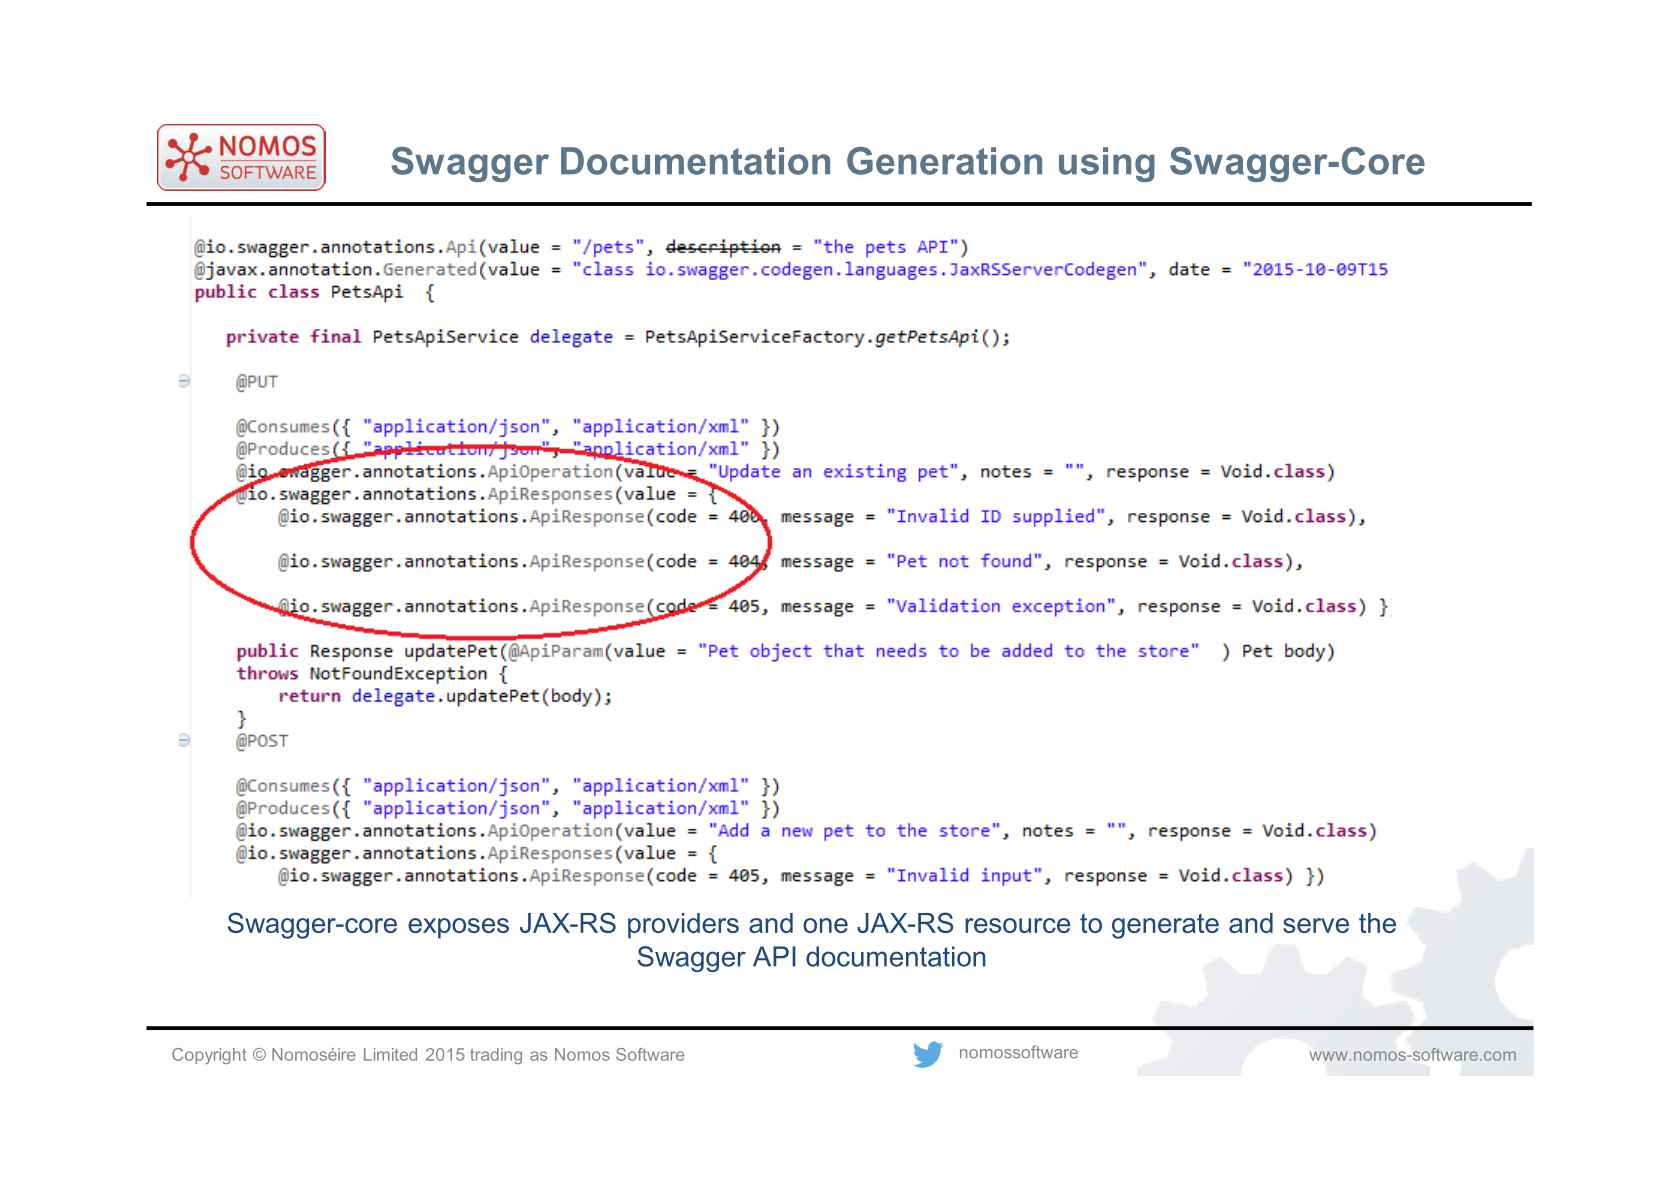 Creating Java REST Servers from Swagger API Definitions